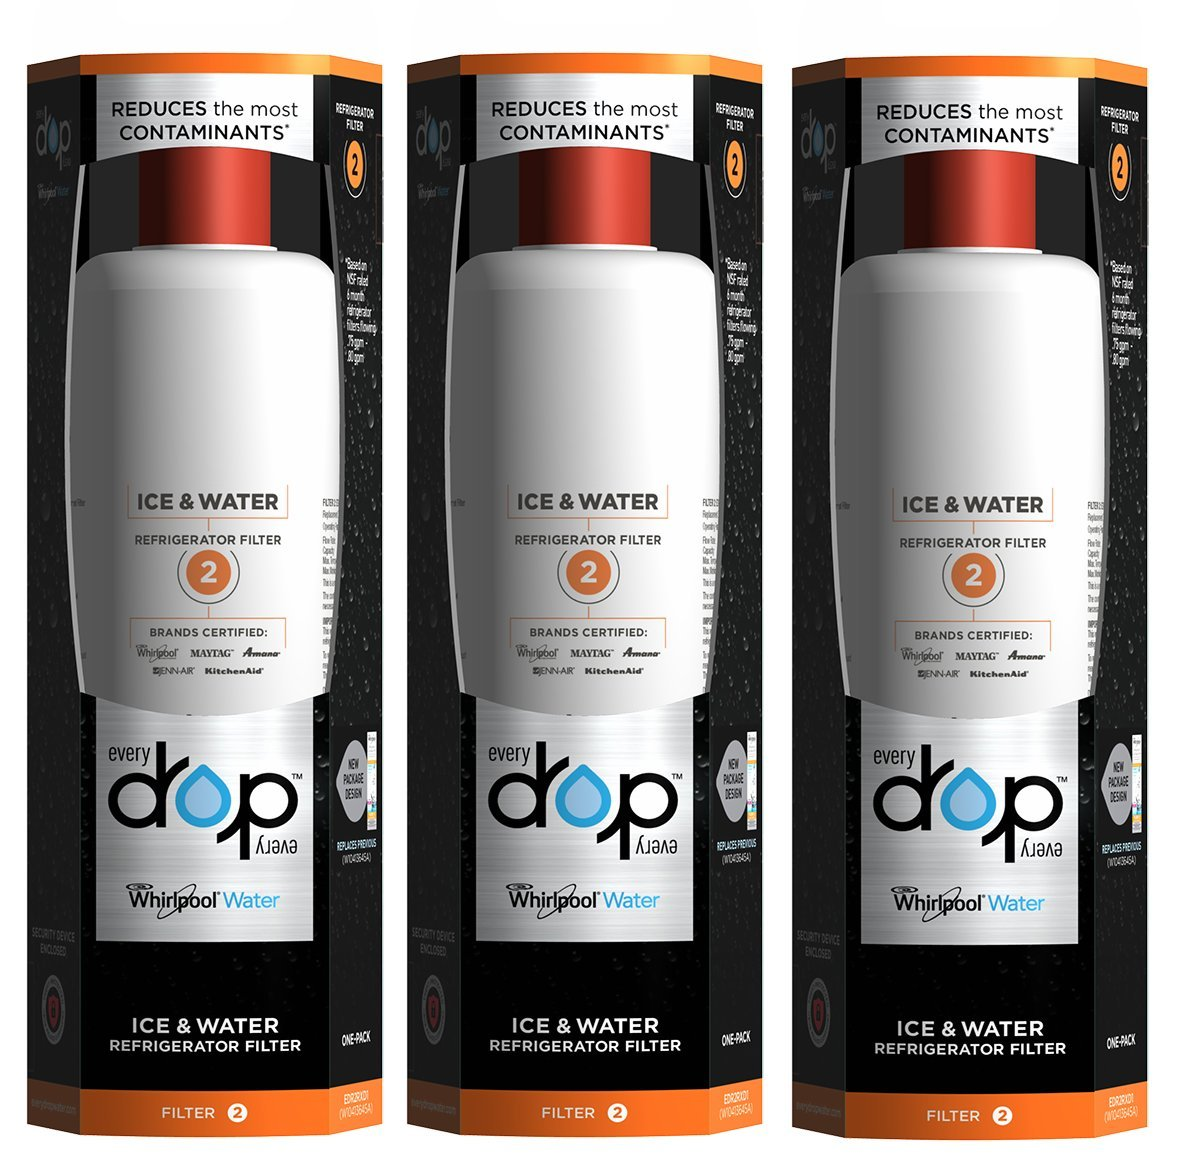 EveryDrop by Whirlpool Refrigerator Water Filter 2 (Pack of 3)